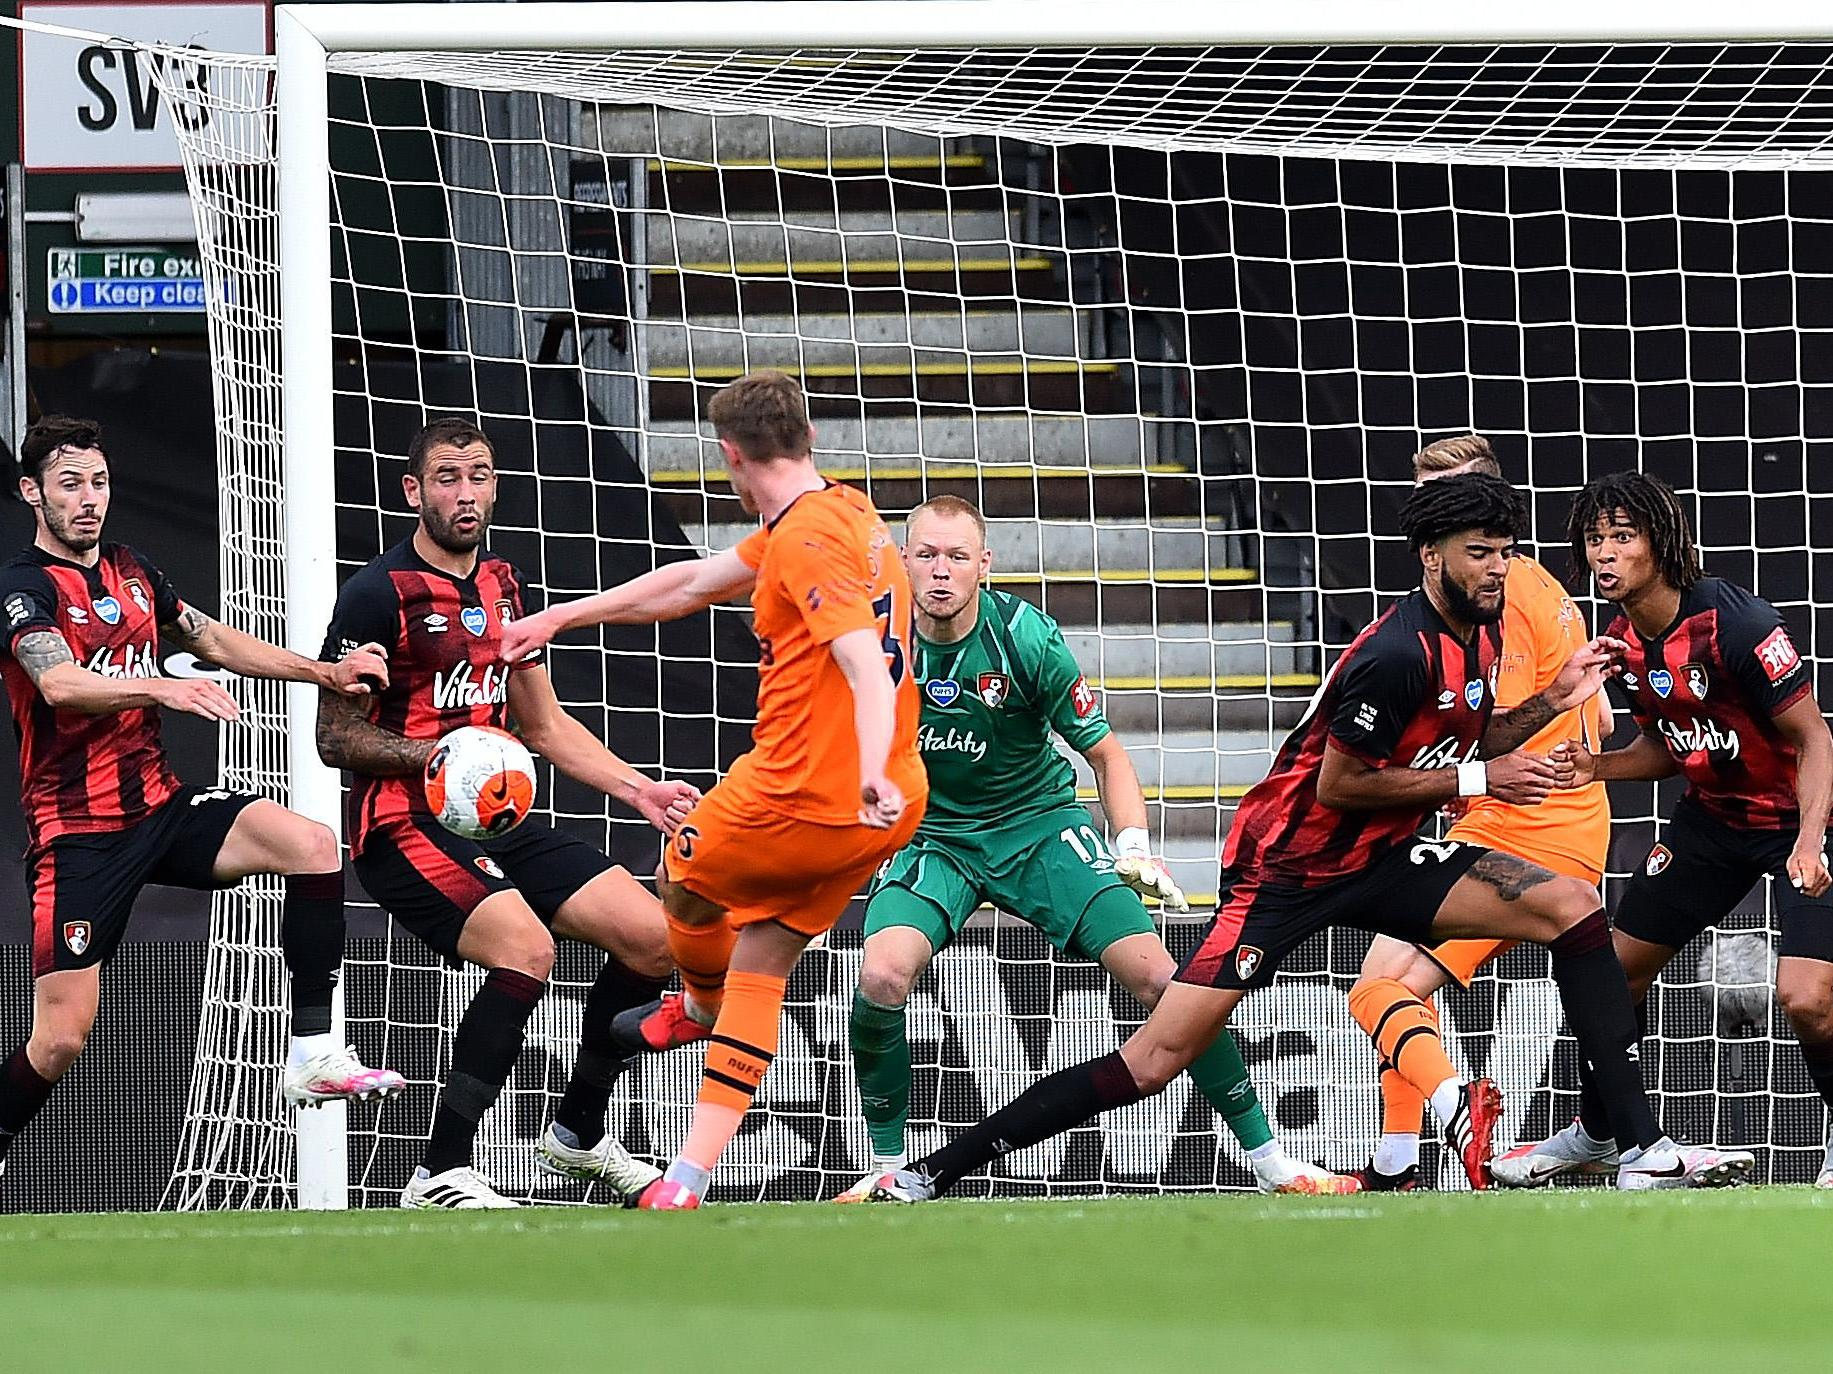 Bournemouth vs Newcastle LIVE: Latest score, goals and updates from Premier League fixture today thumbnail